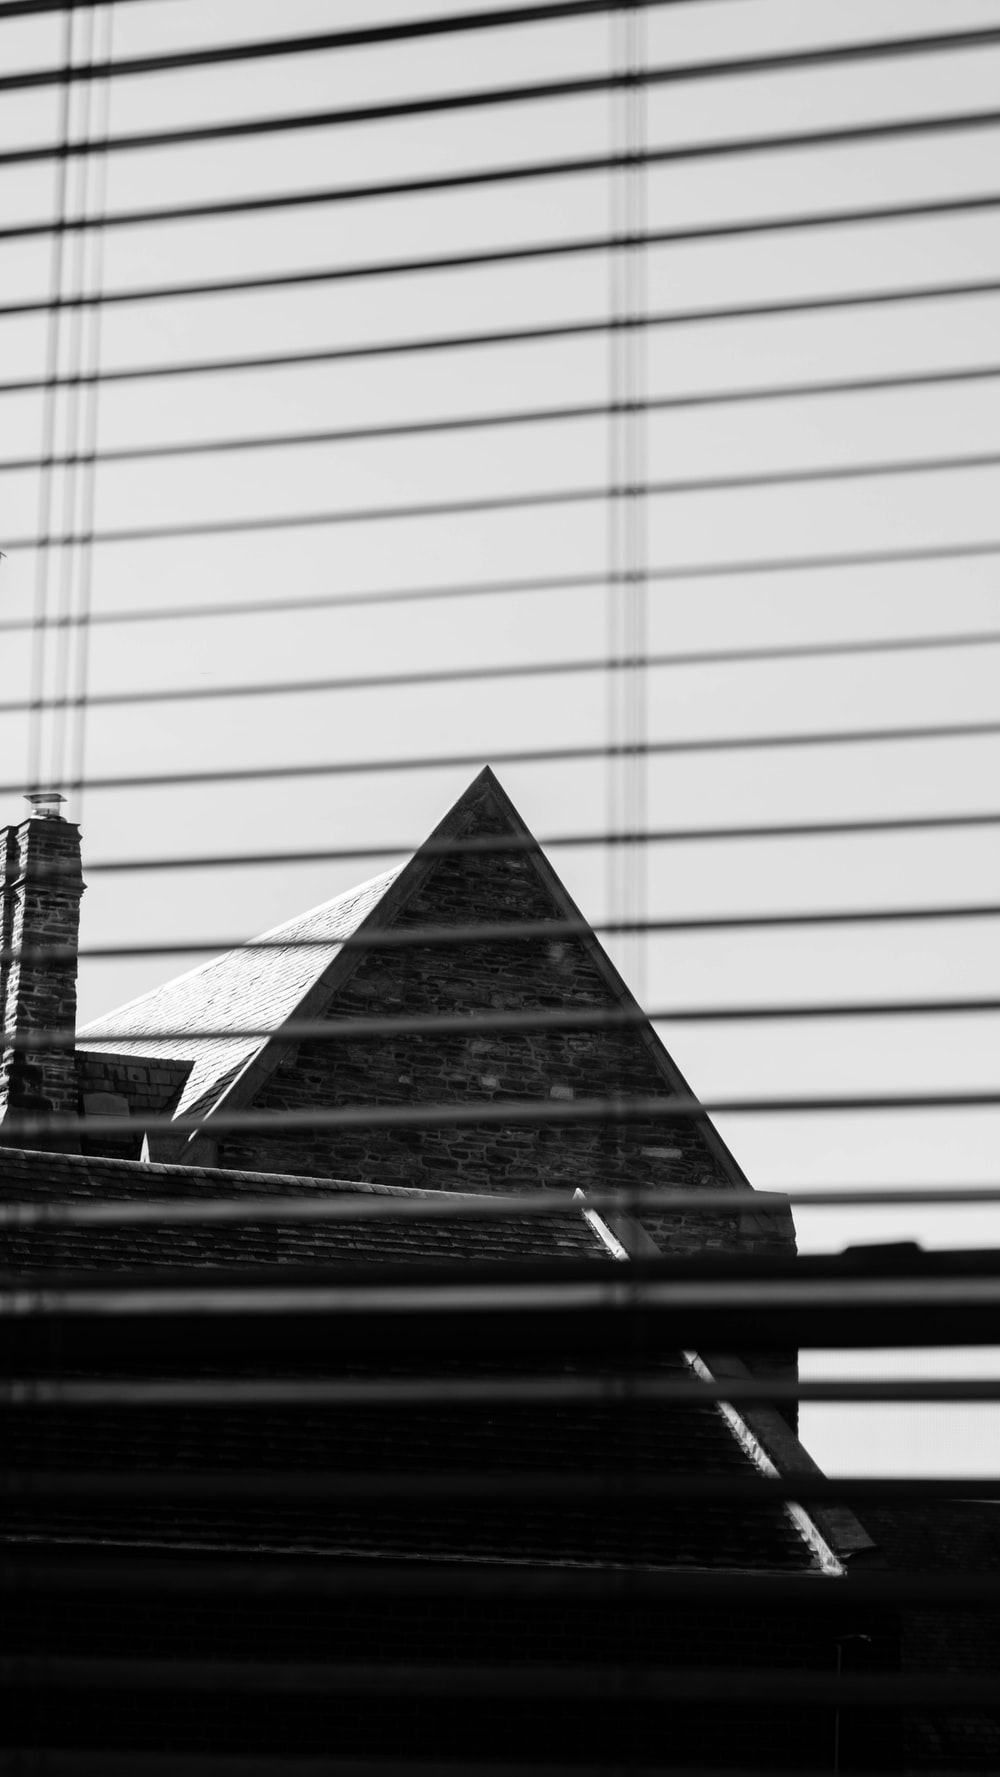 silhouette of house behind of window blinds